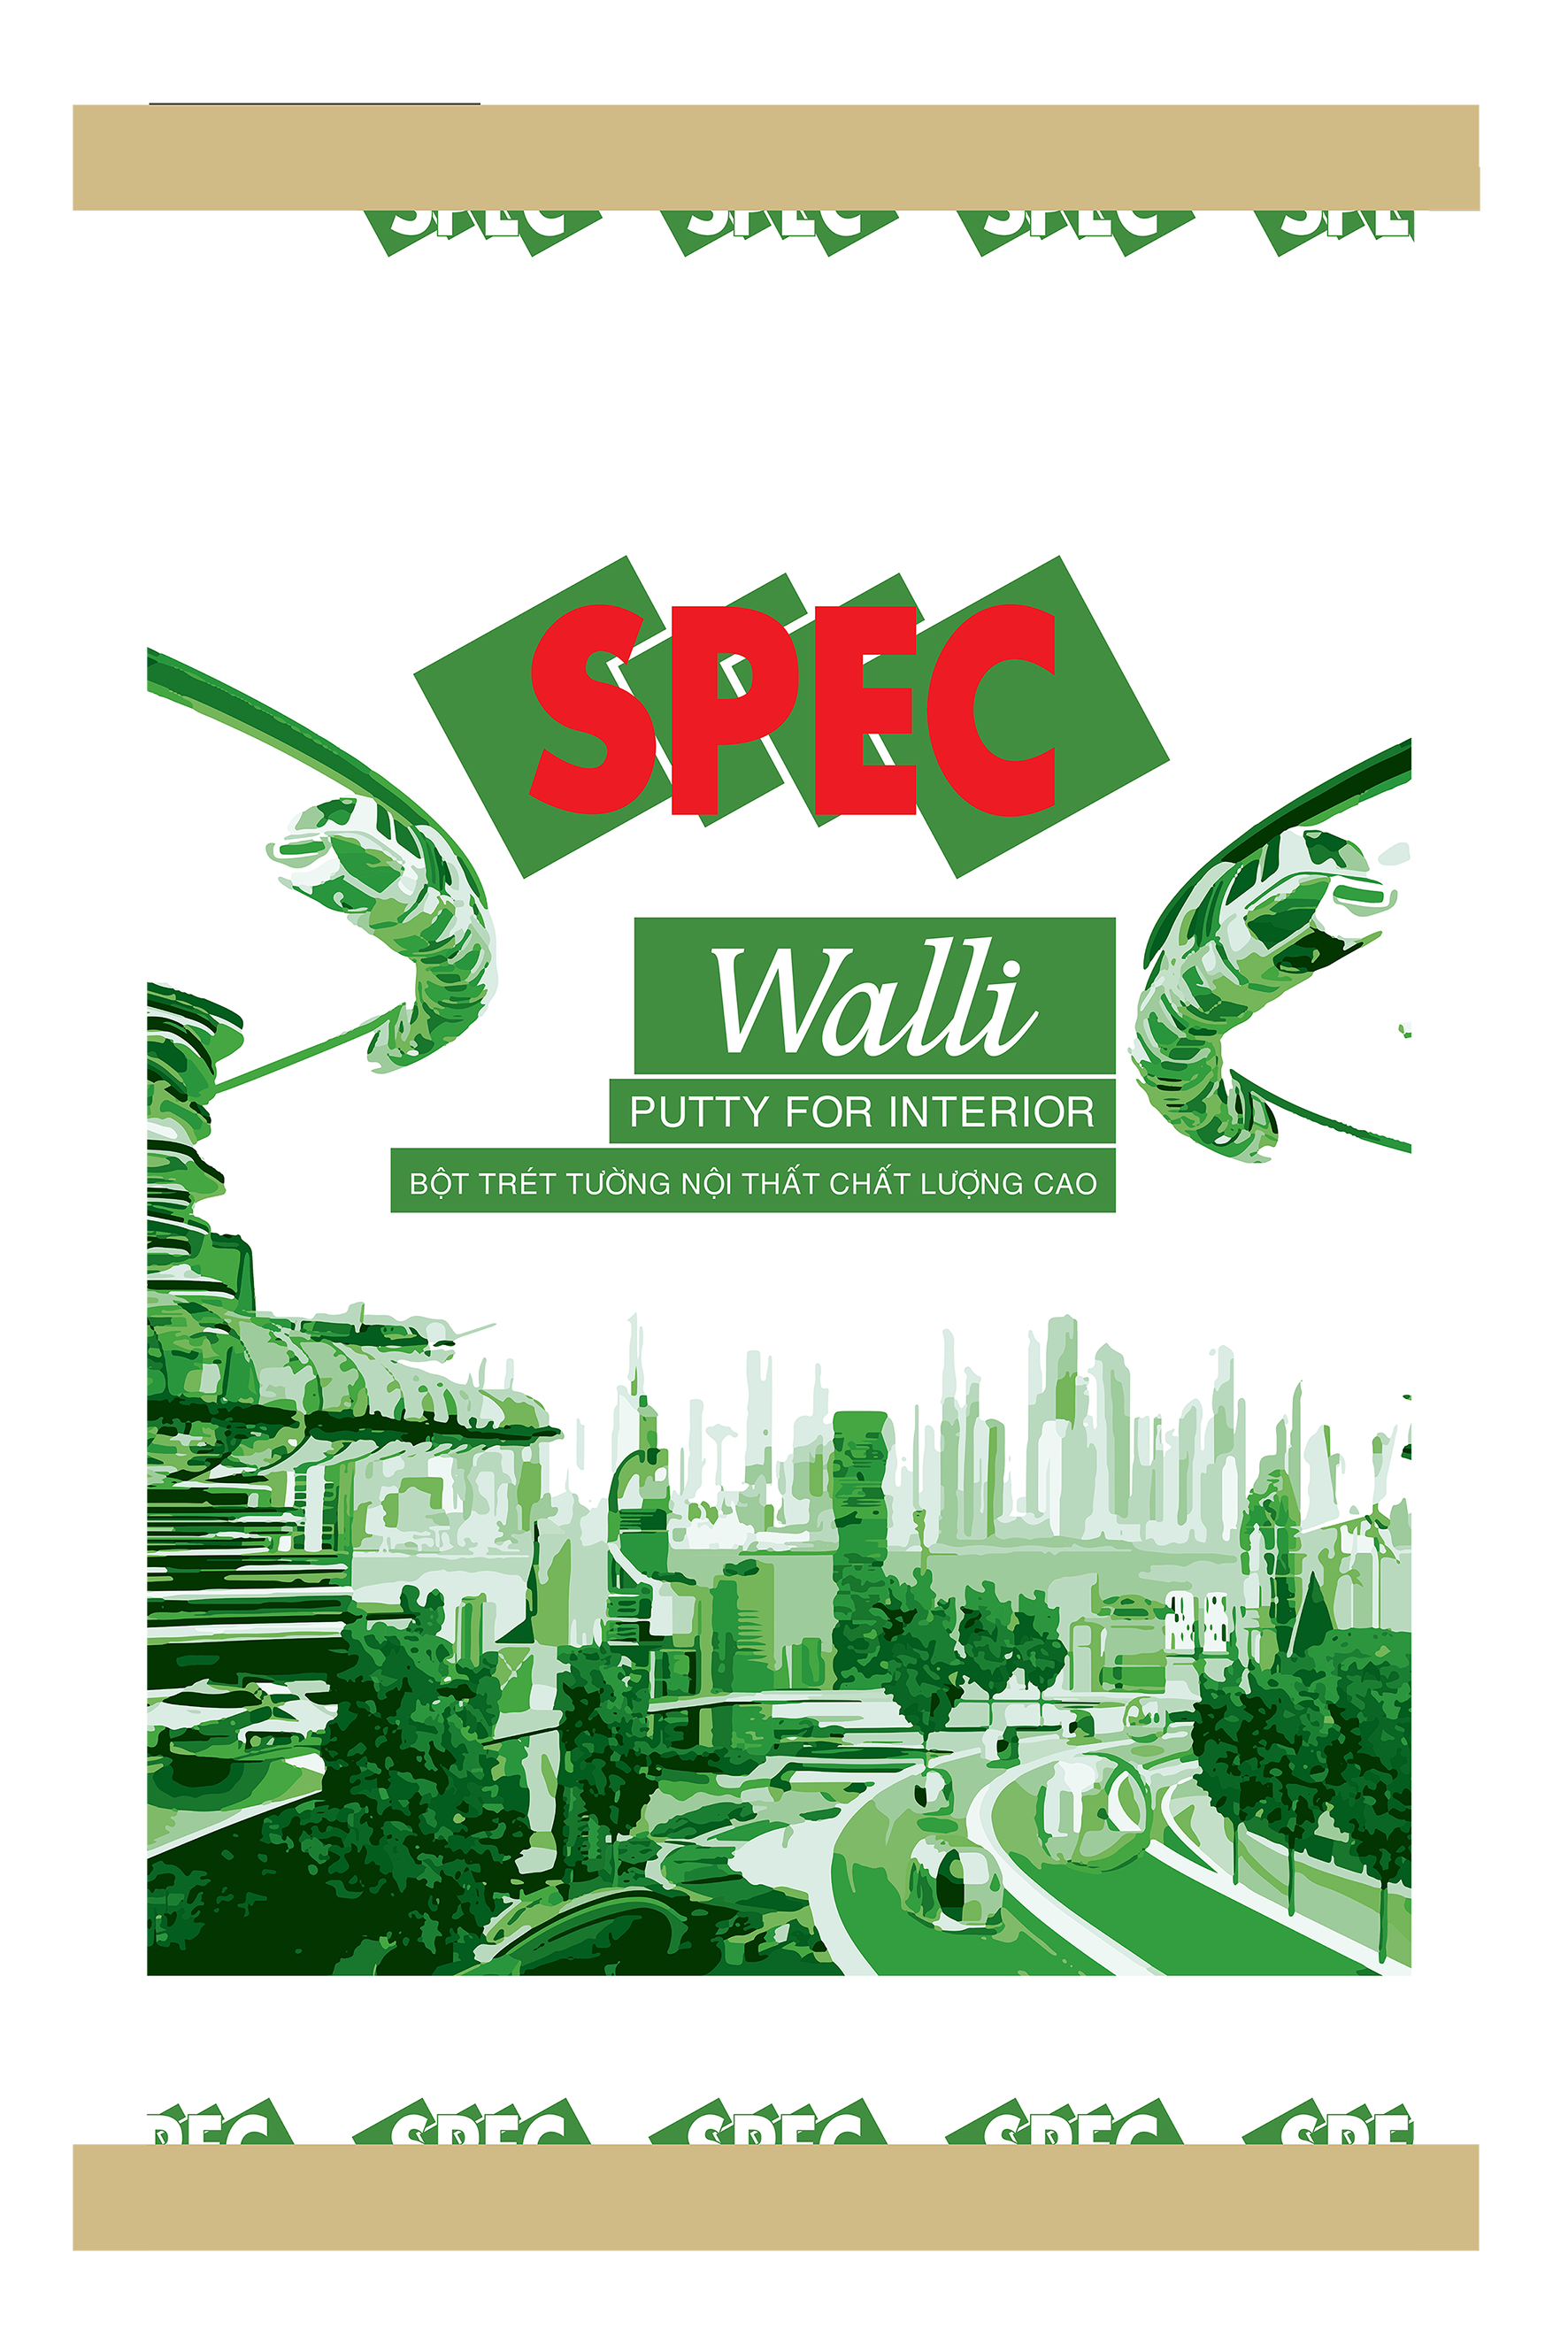 SPEC WALLI PUTTY FOR INTERIOR